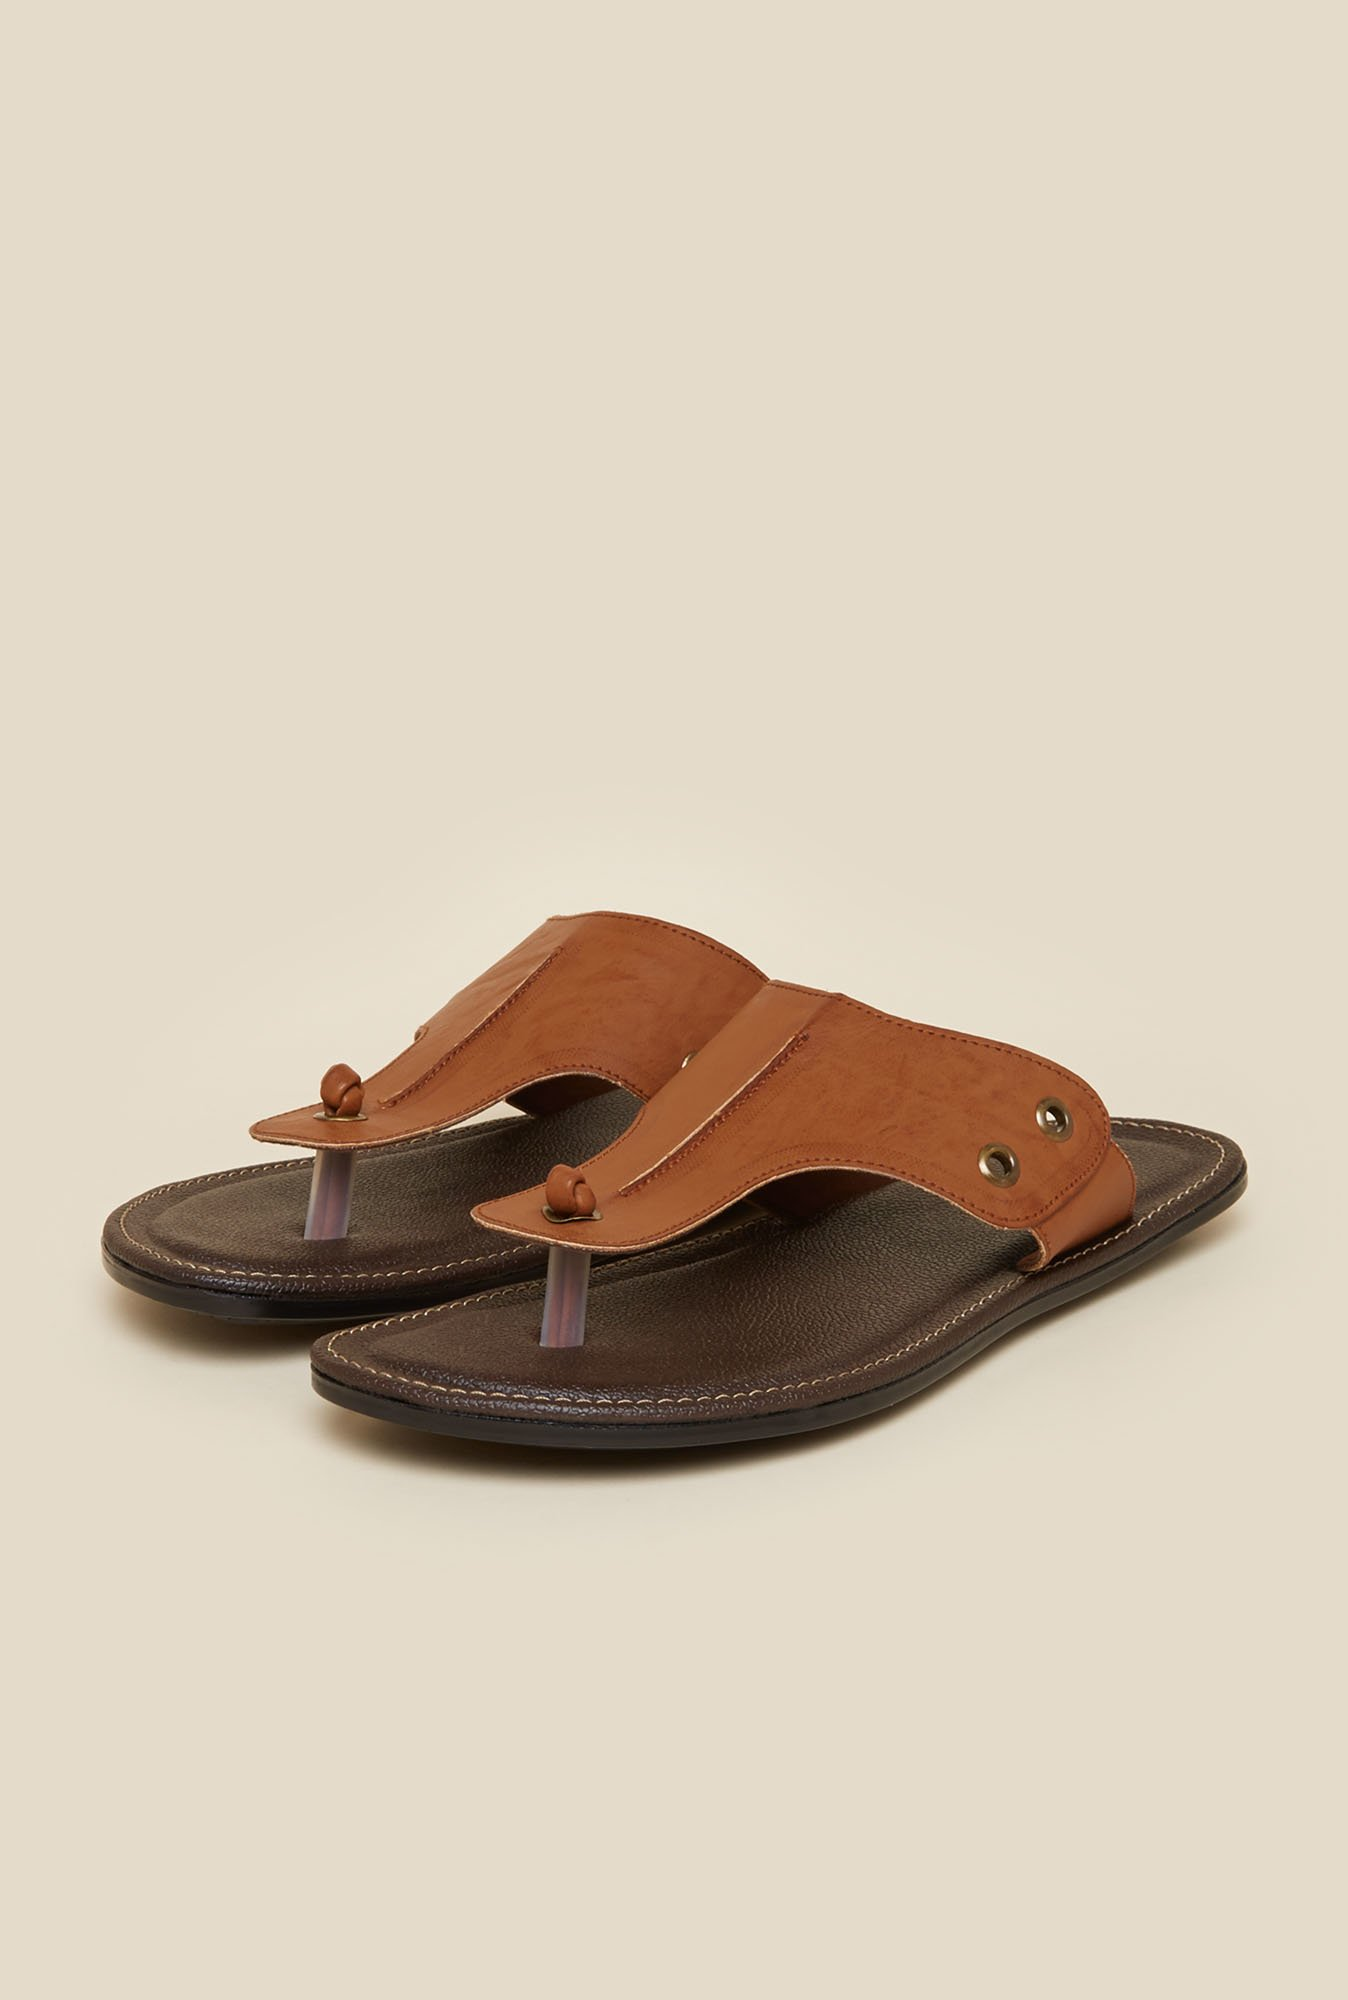 Metro Tan Slip-On Sandals